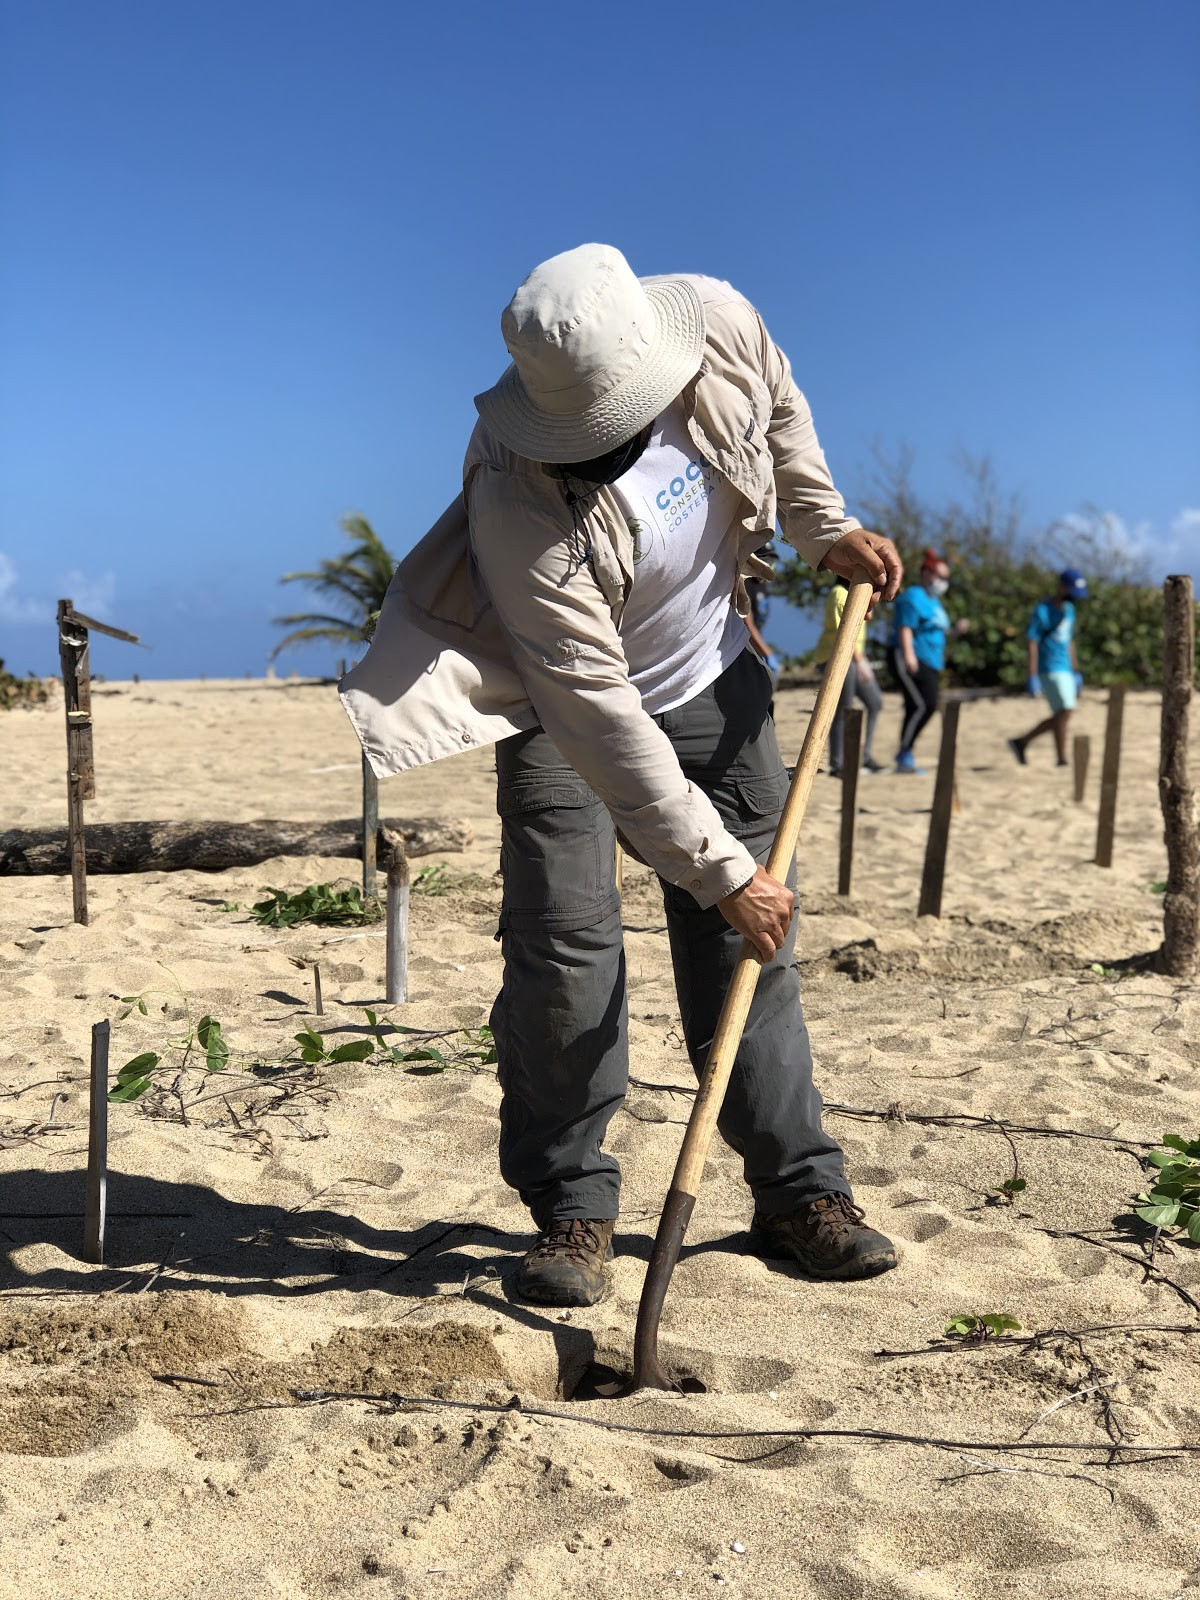 Co-founder of CoCoPR, Hector Varela digs a shovel into the sand, preparing to plant a sea grape sapling.